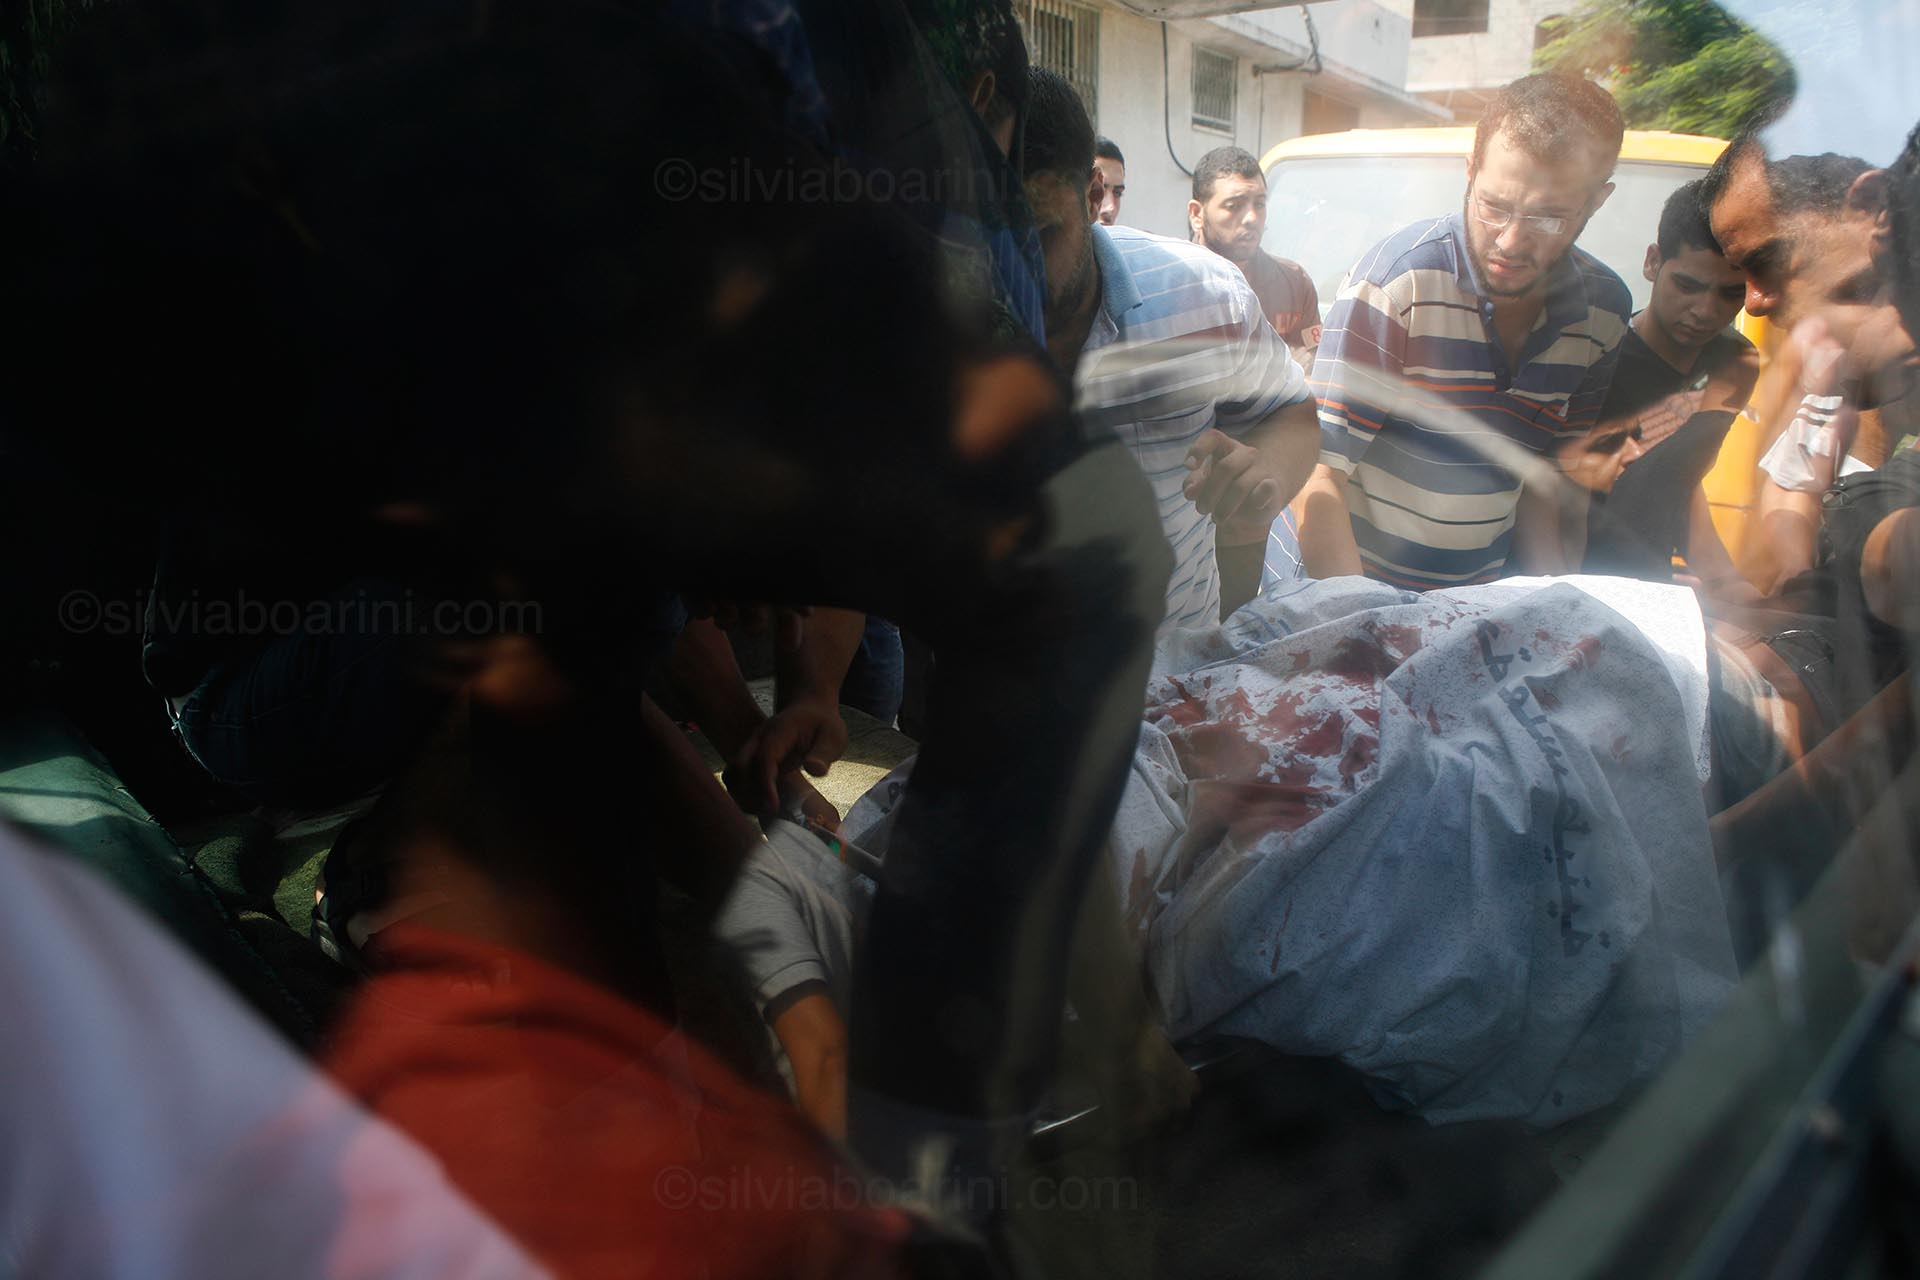 An ambulance arrives at the Shifa hospital morgue on the day Israeli forces began carpet bombing the neighbourhood of Shujaya. Gaza, 20 July 2014